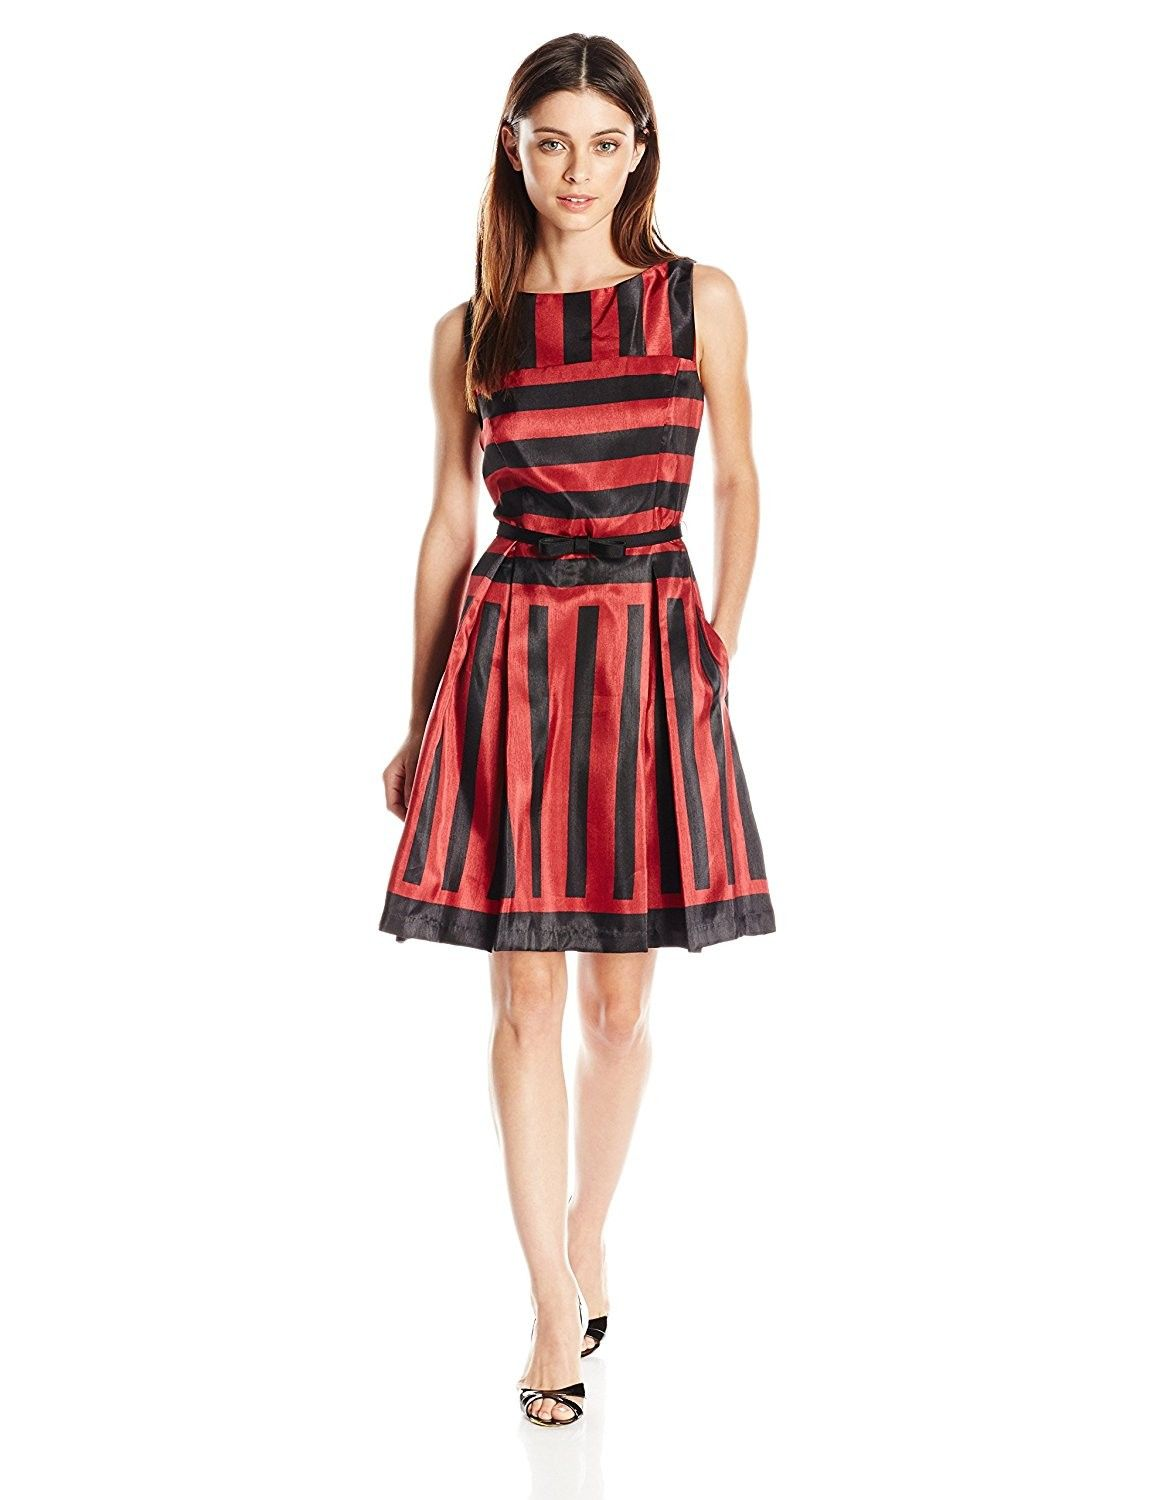 Women S Petite Sleeveless Striped Party Dress Black Red C31267y46sb Red Cocktail Dress Red Sleeveless Dress Womens Dress Suits [ 1500 x 1154 Pixel ]